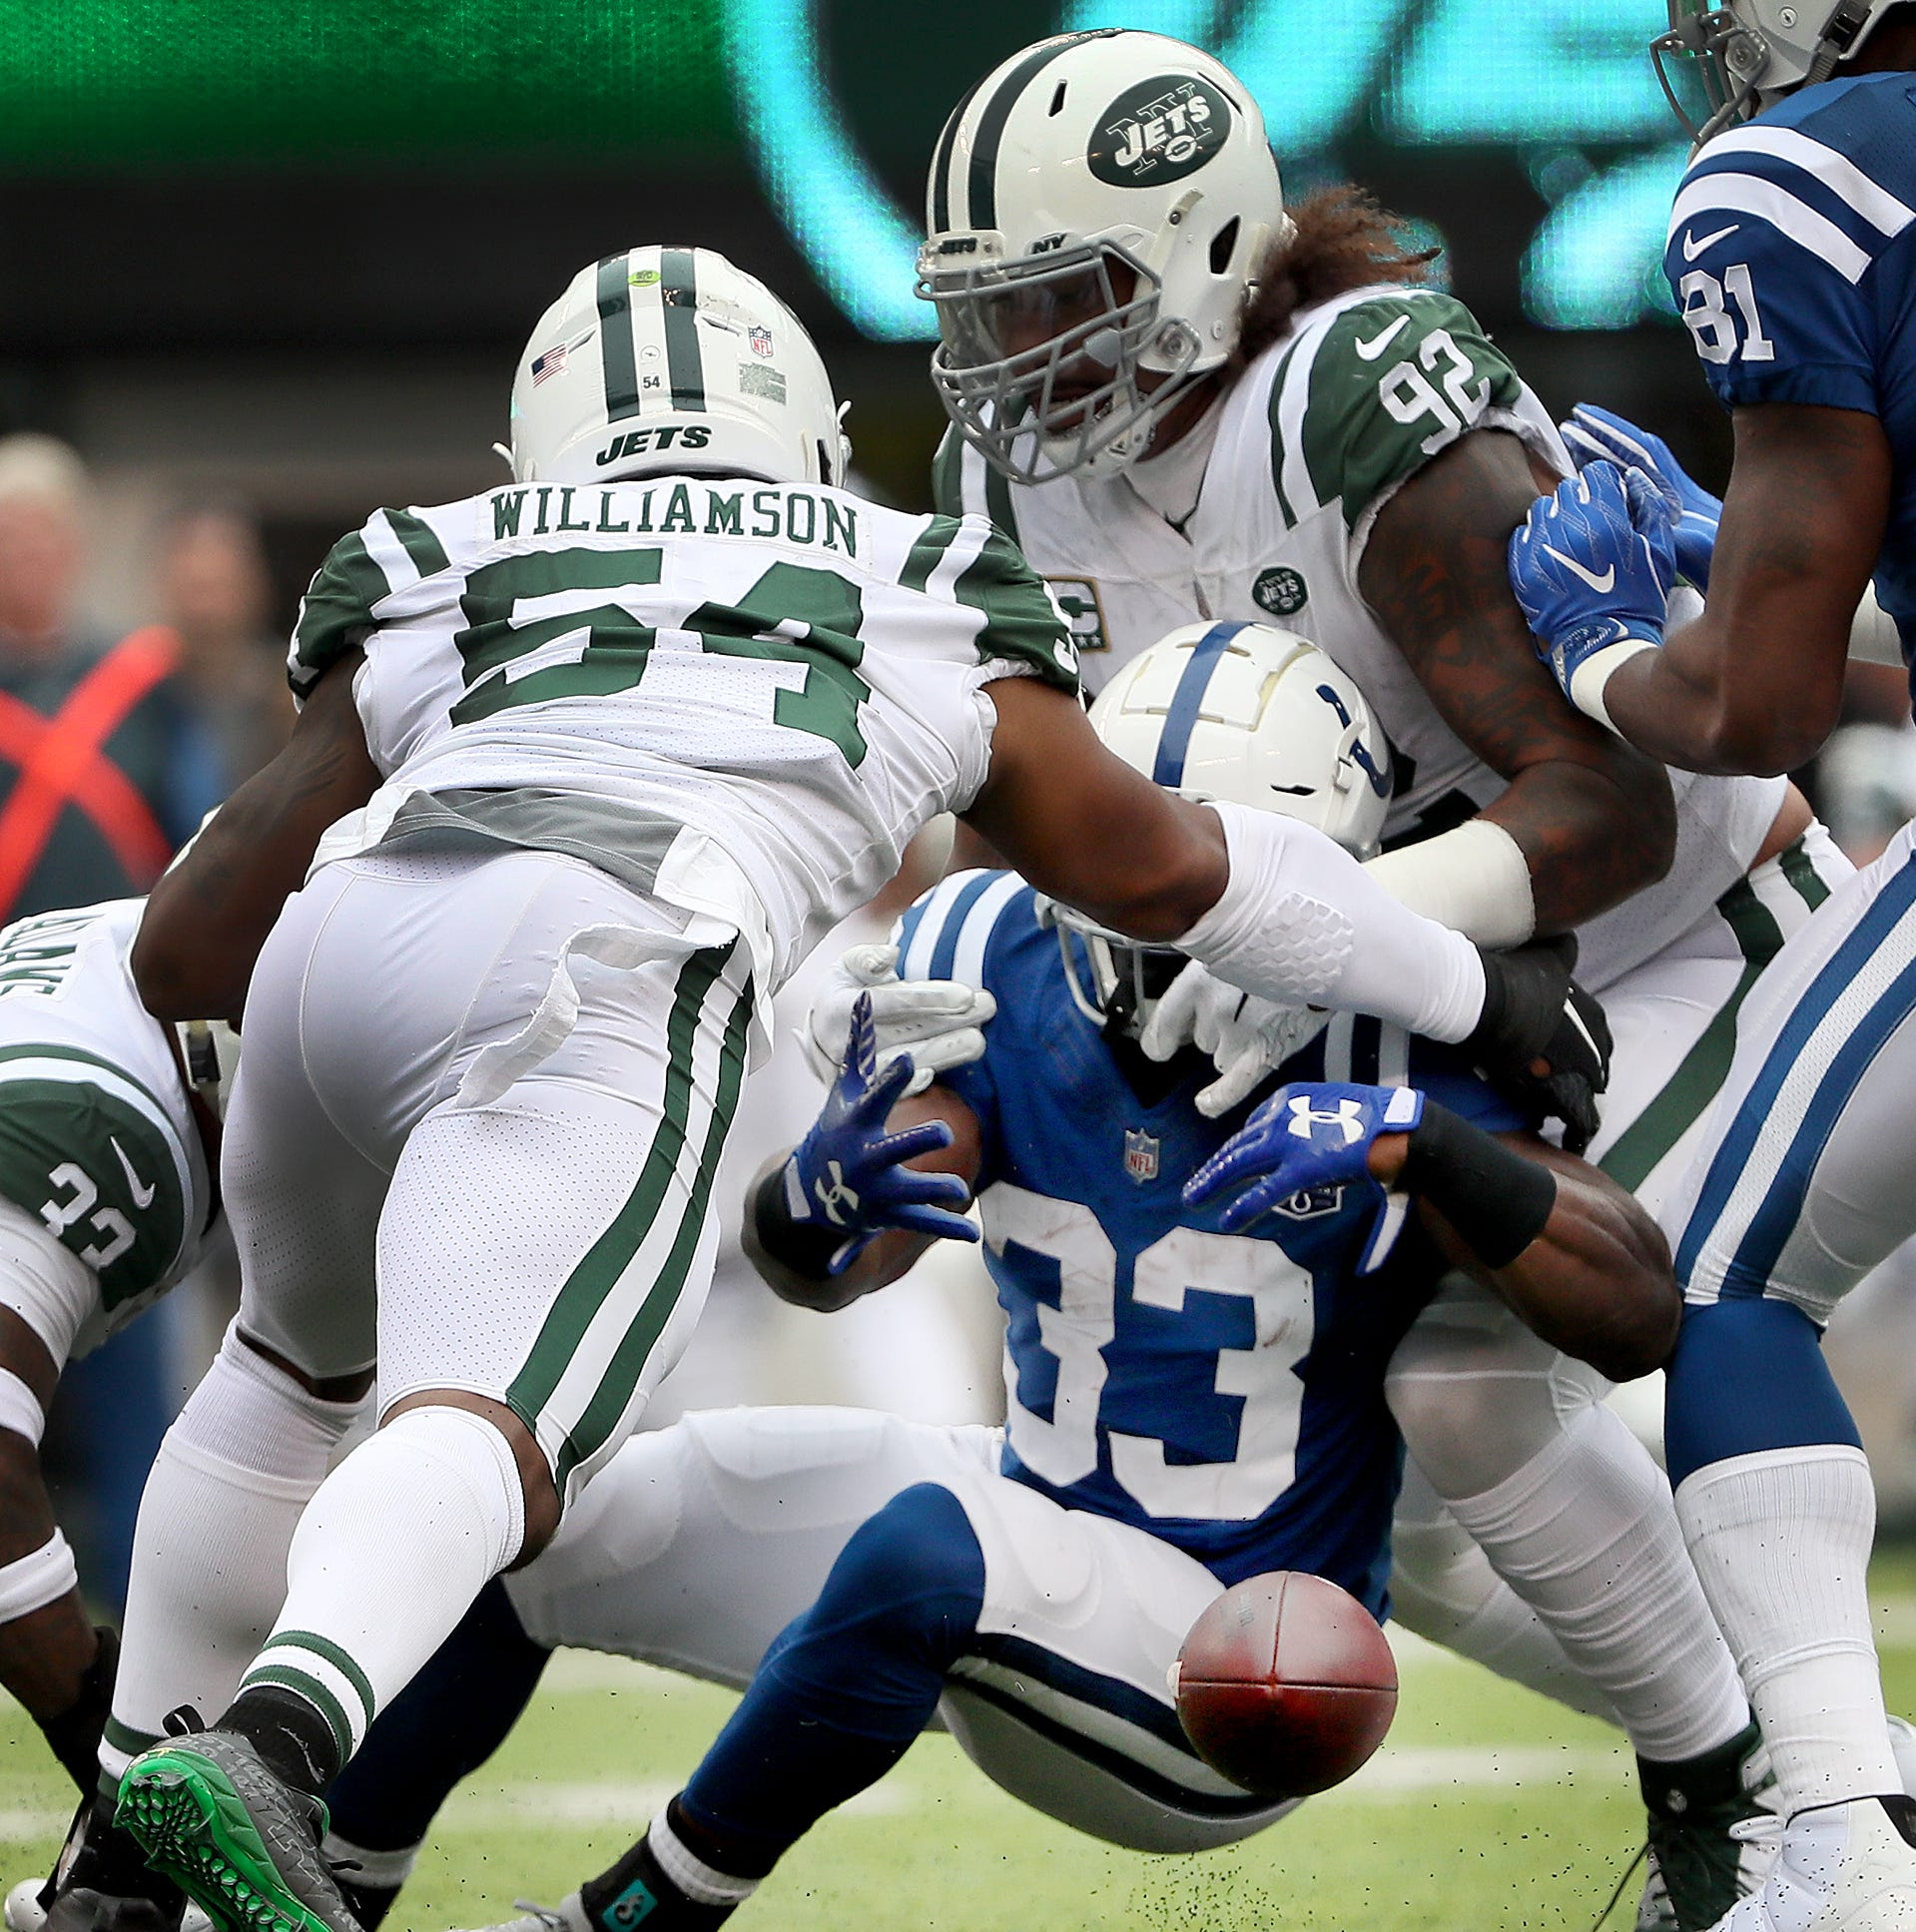 Colts worst performance of the season results in 42-34 loss vs. Jets